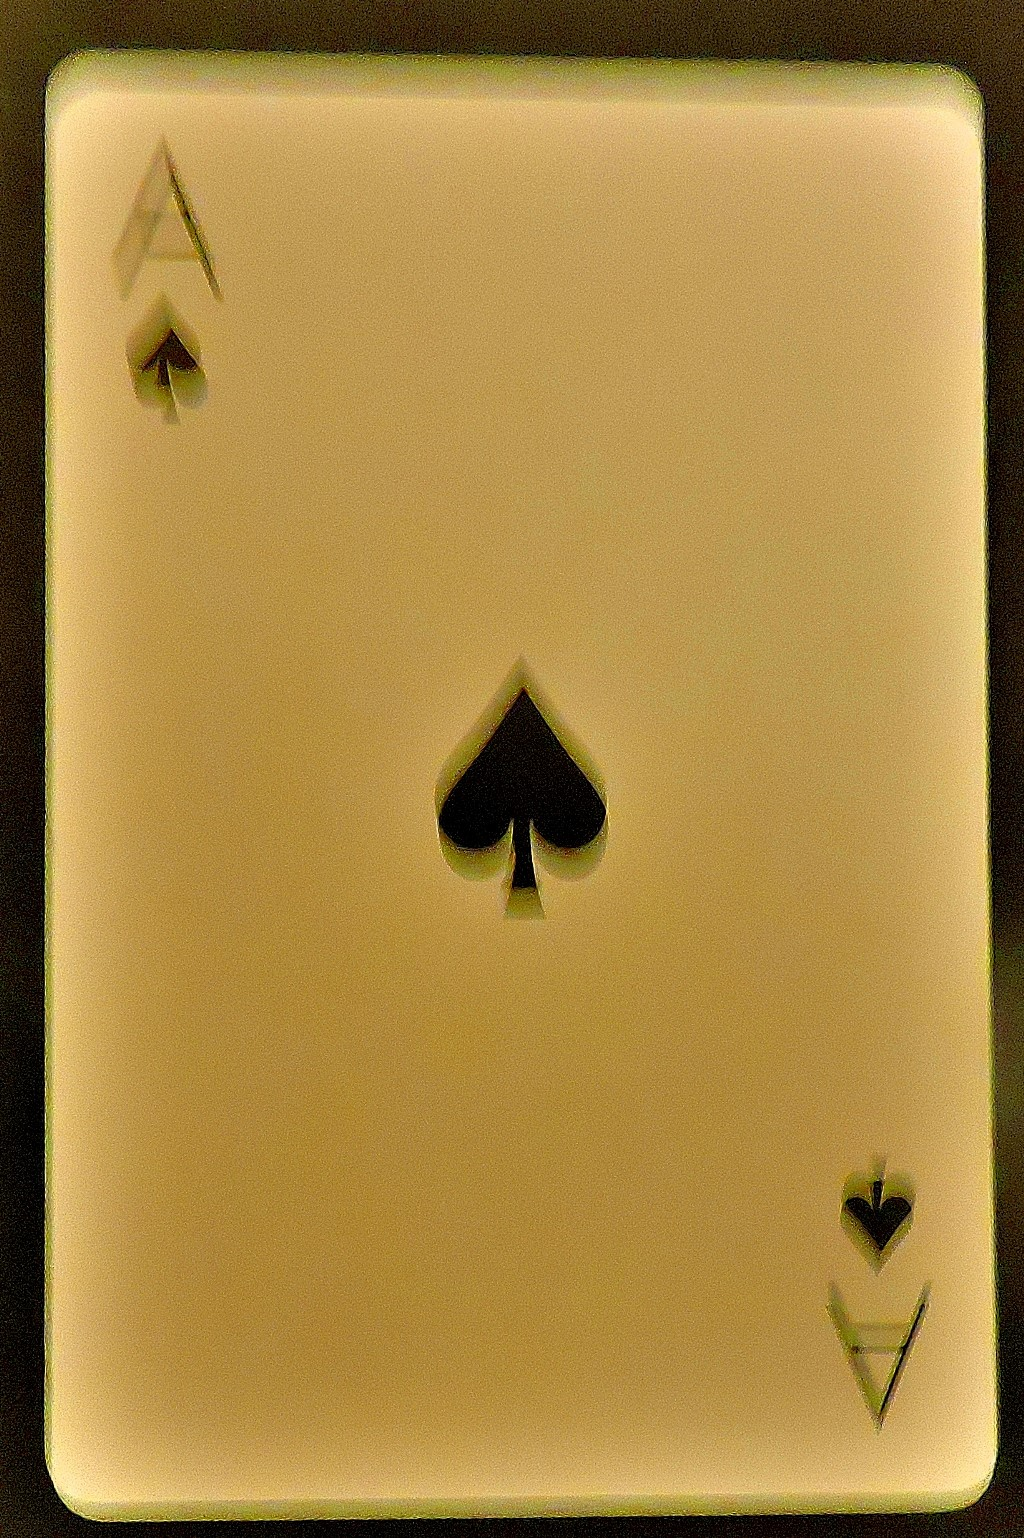 An unadorned ace of spades.